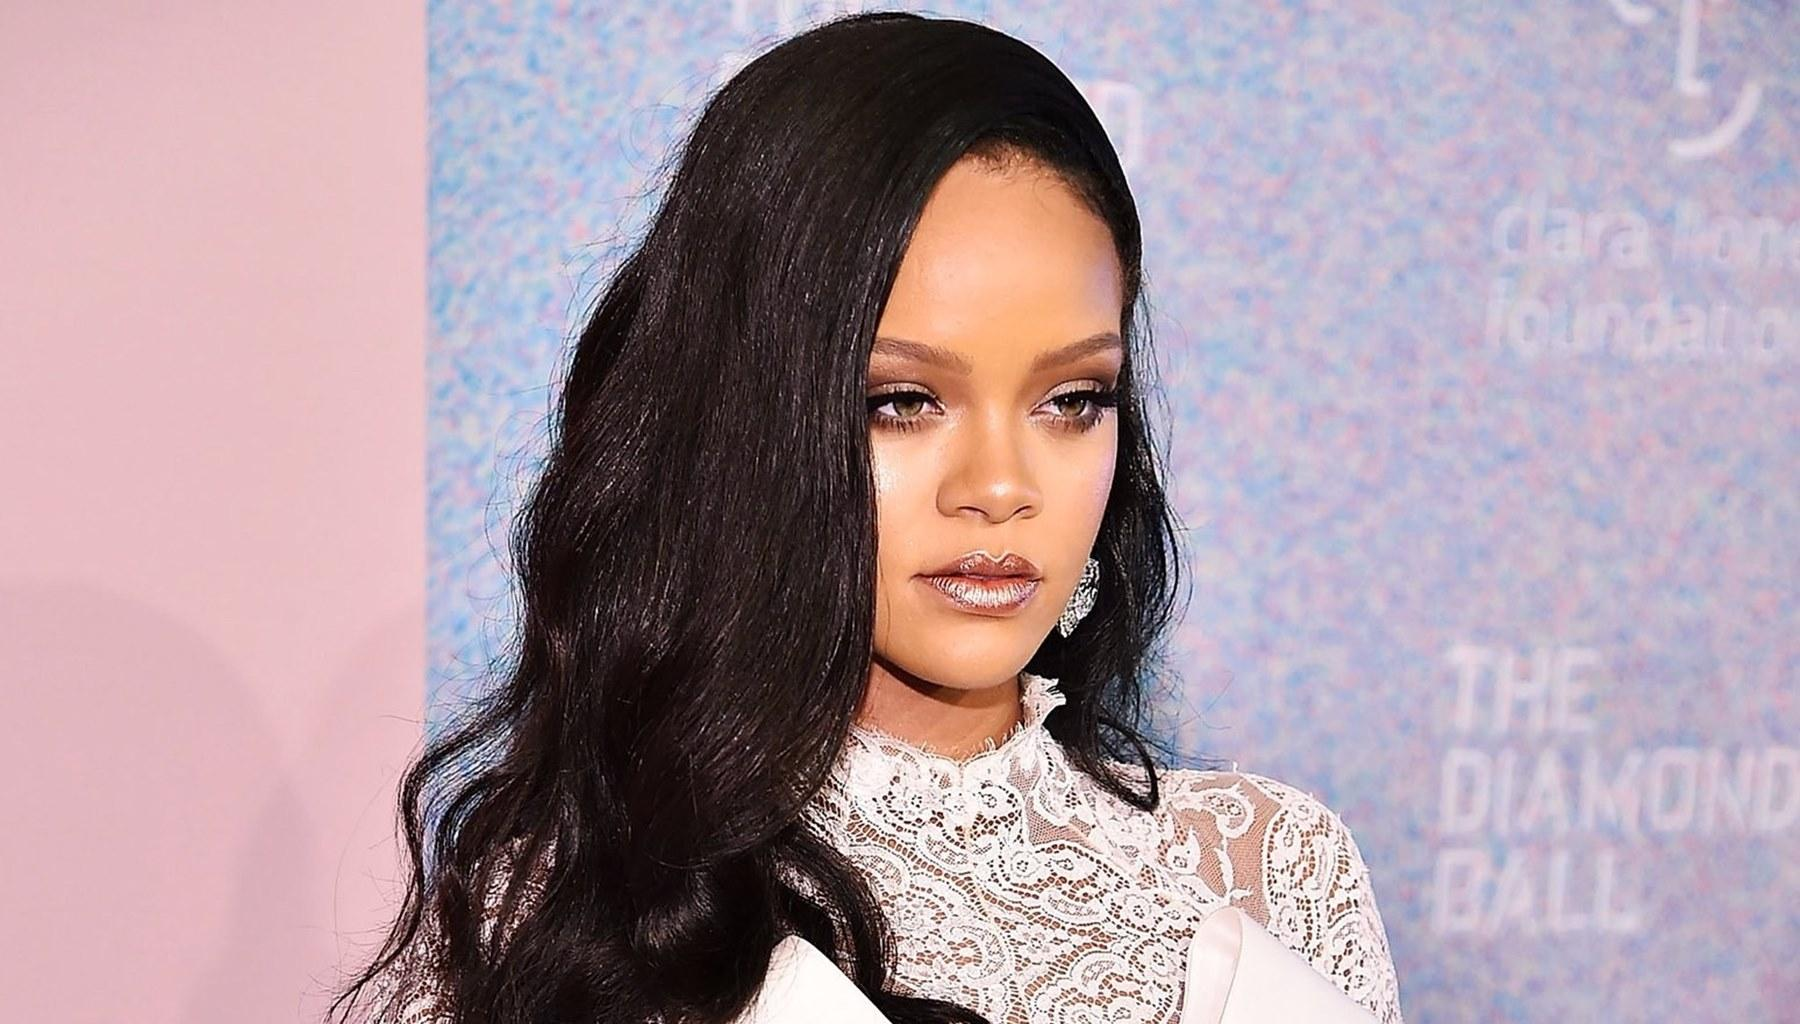 Rihanna Had A Late-Night Secret Rendez-Vous With This Famous Man -- Here Are The Juicy Details